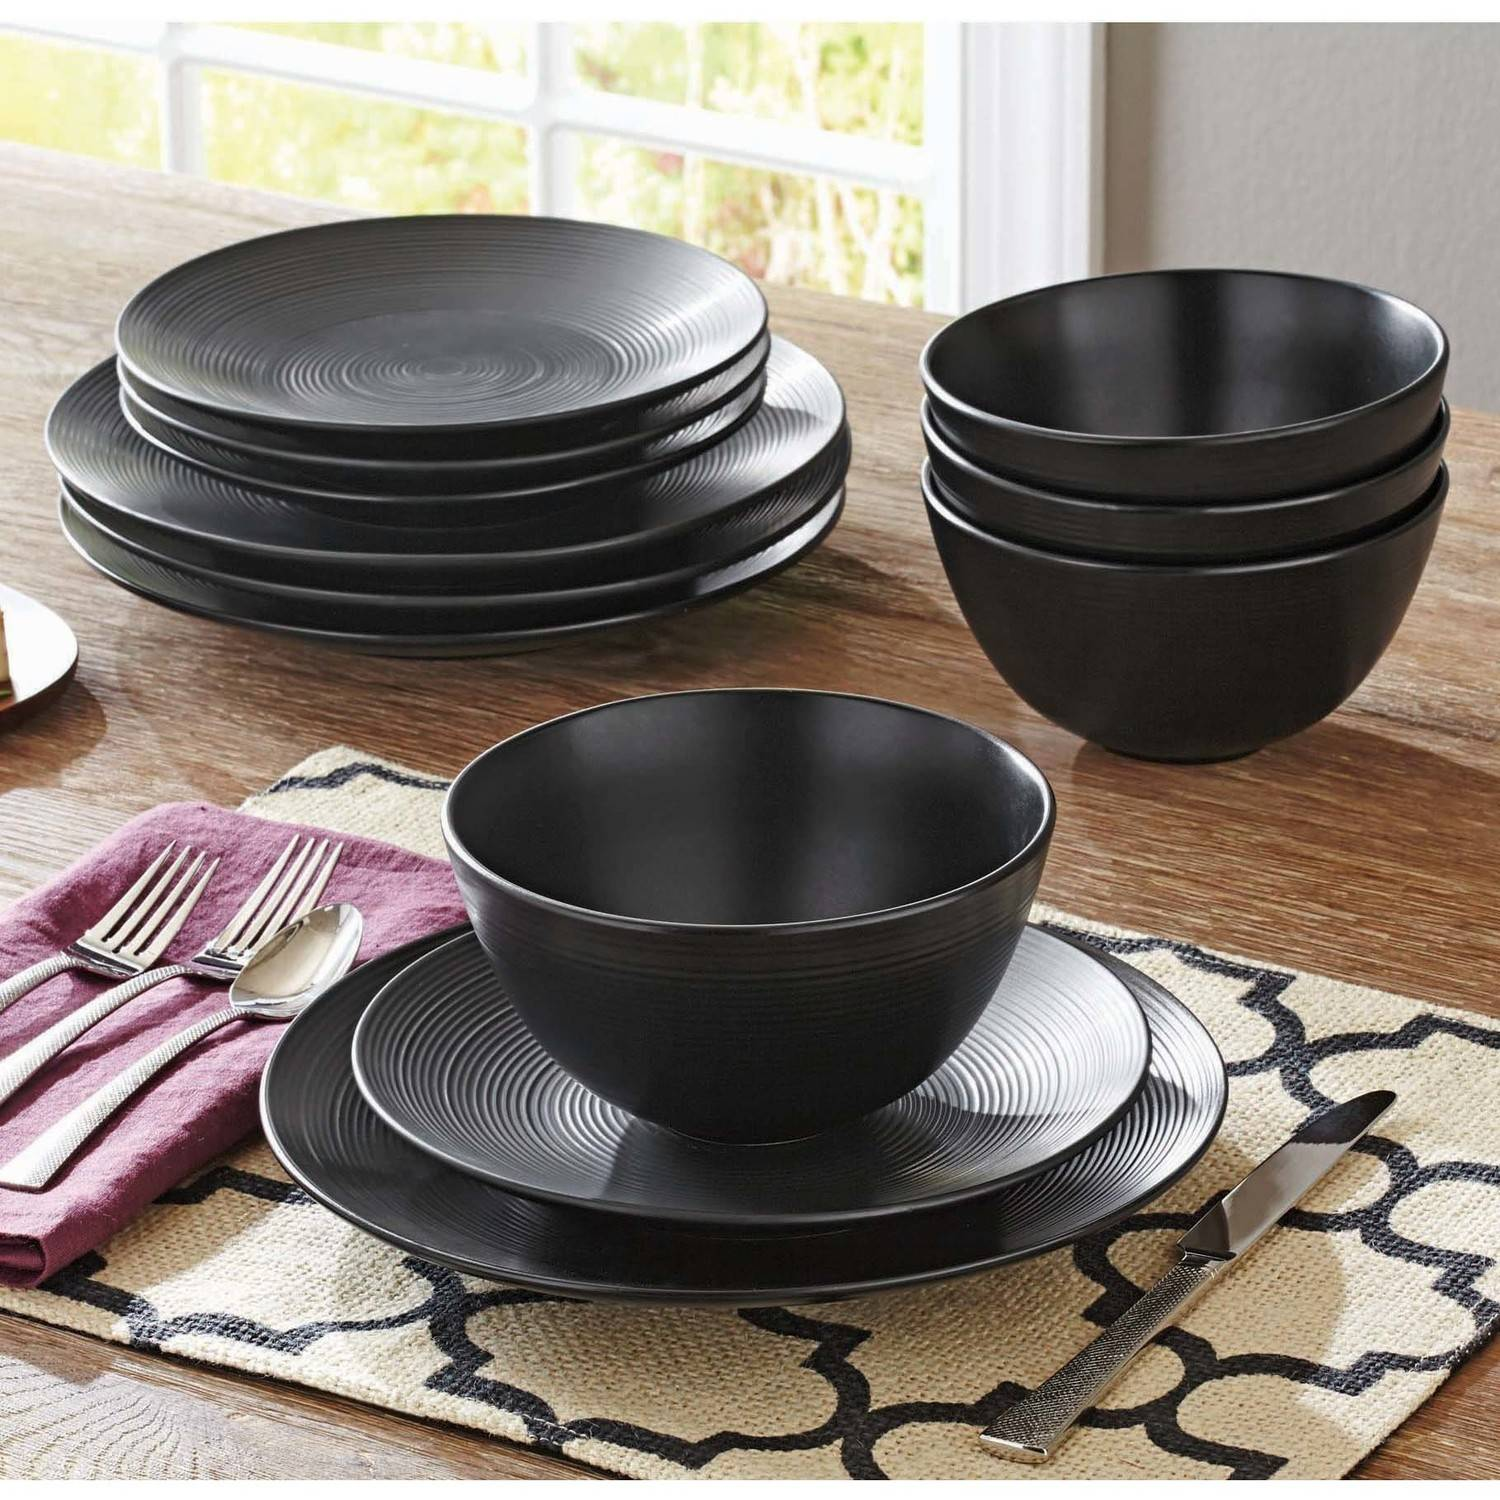 Modern Kitchen Plates: 12-Piece Dinnerware Set Matte Swirl Modern Meal Kitchen